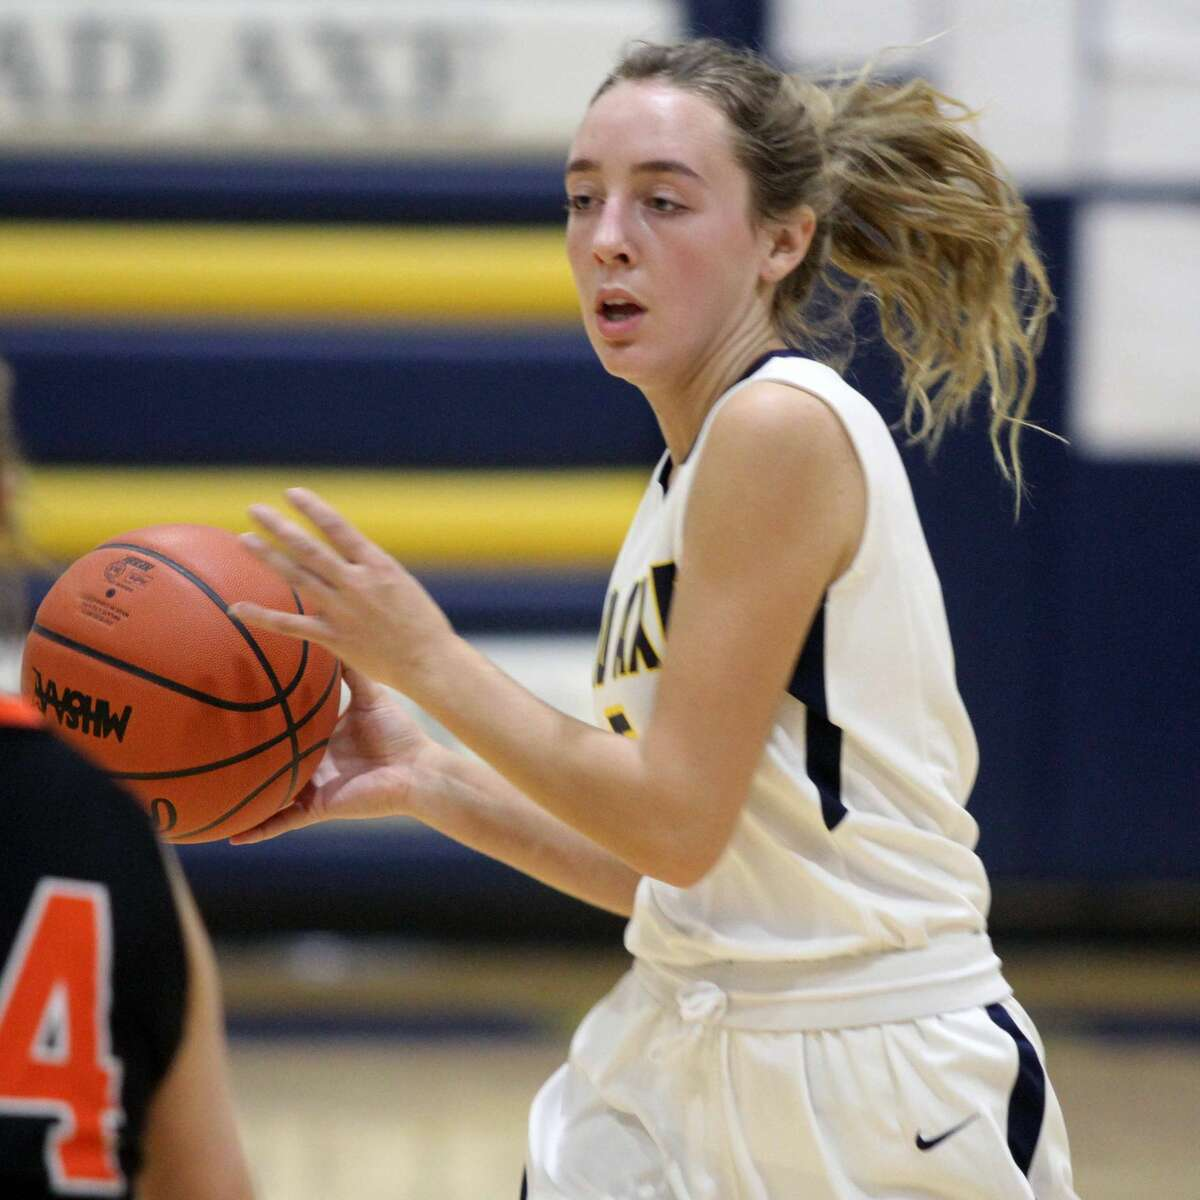 Harbor Beach picked up its first road win of the season against Bad Axe by a score of 54-30 on Friday, Dec. 6.